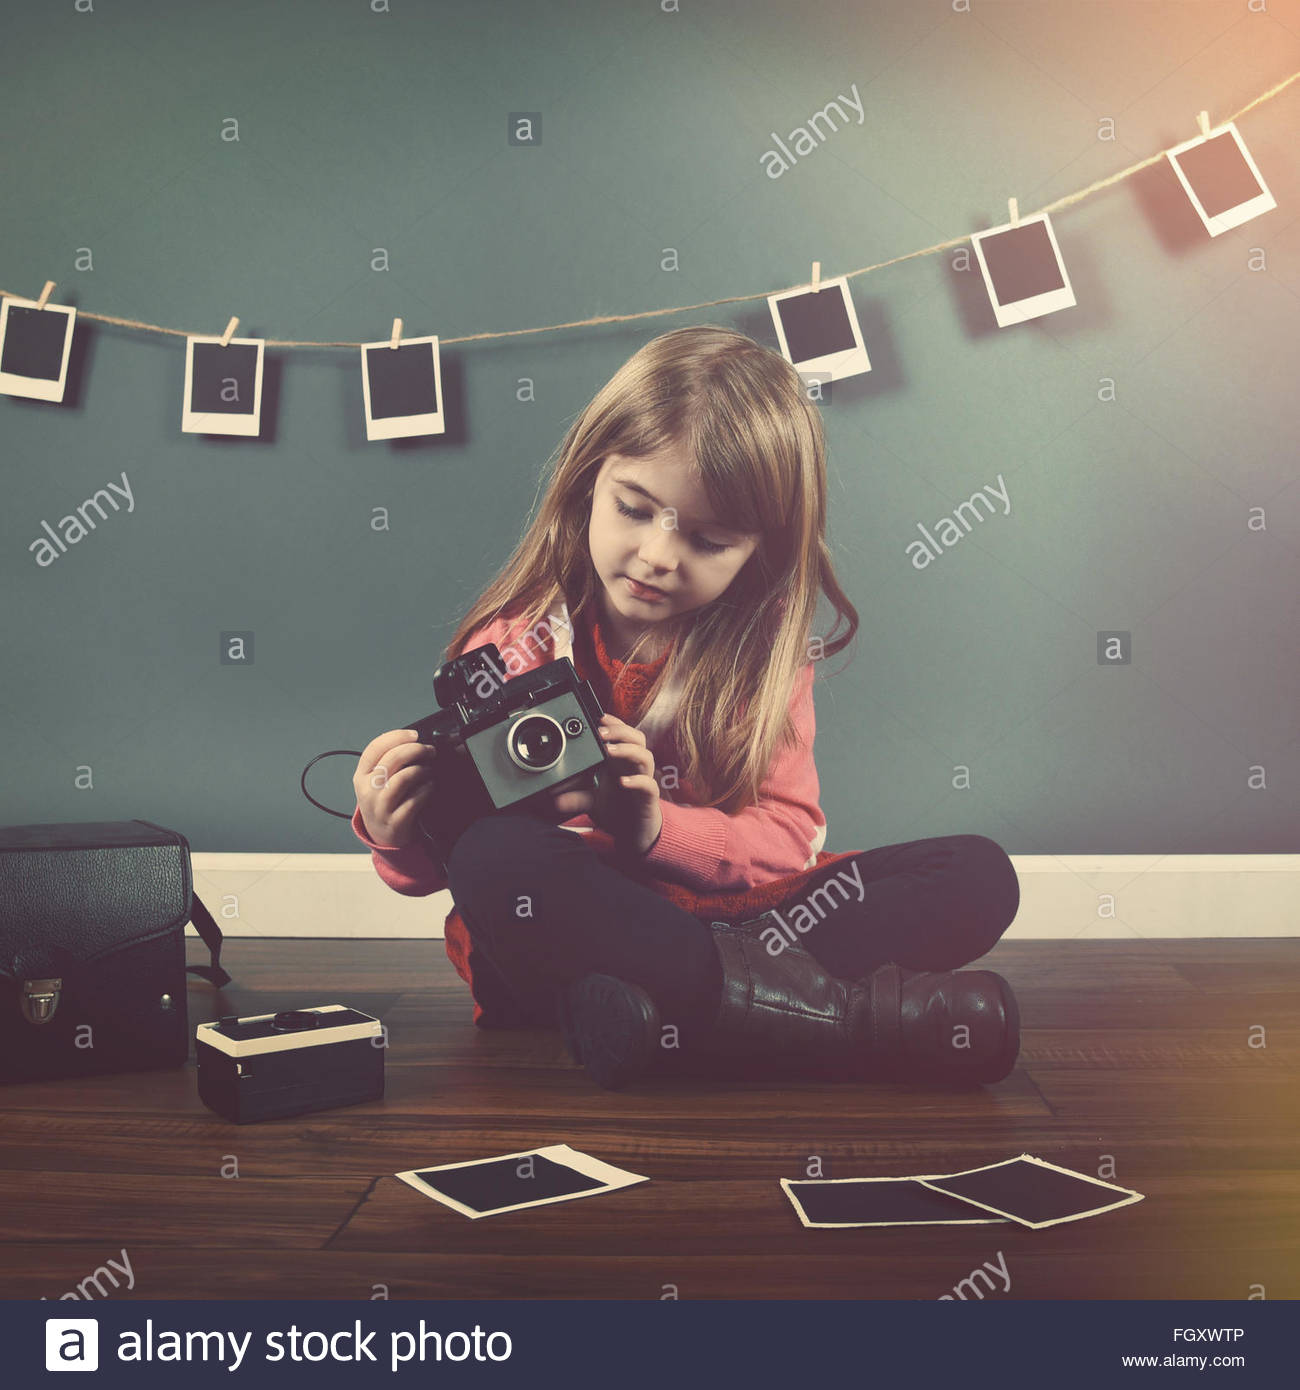 A photo of a vintage child taking a picture with an old camera and hanging pictures in the background for creativity. - Stock Image